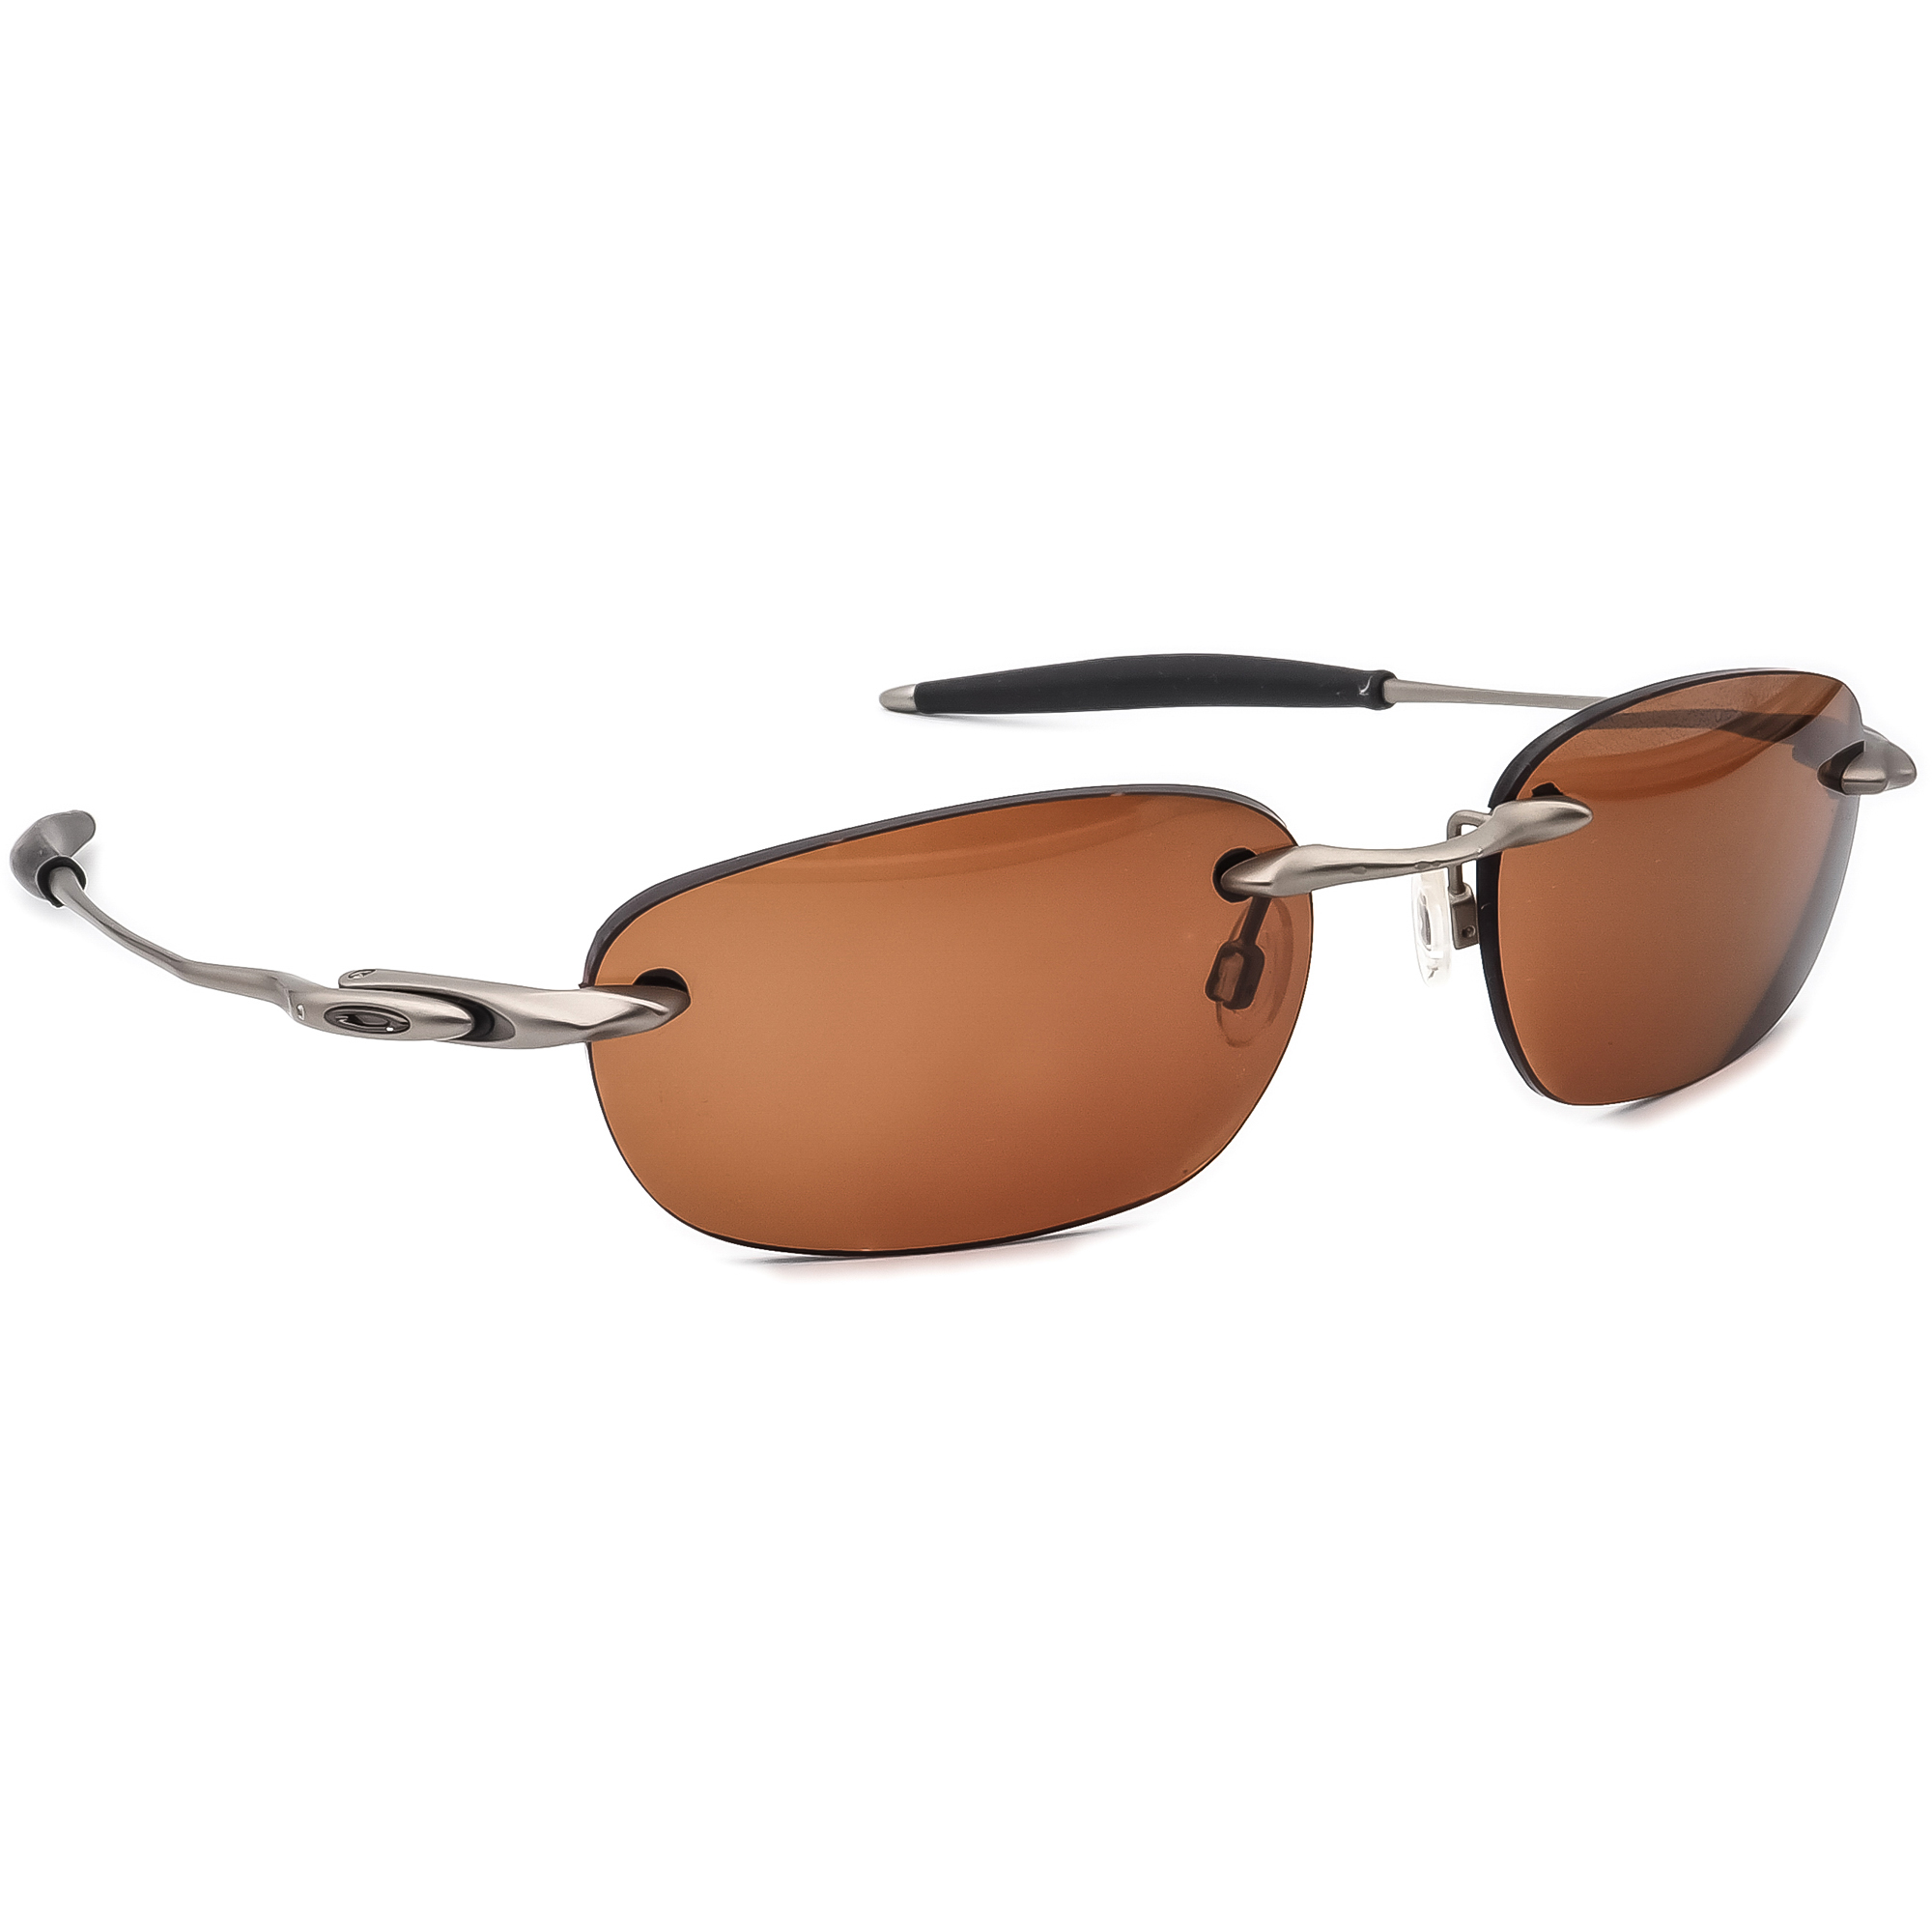 Oakley Why 8 Sunglasses Frame Only